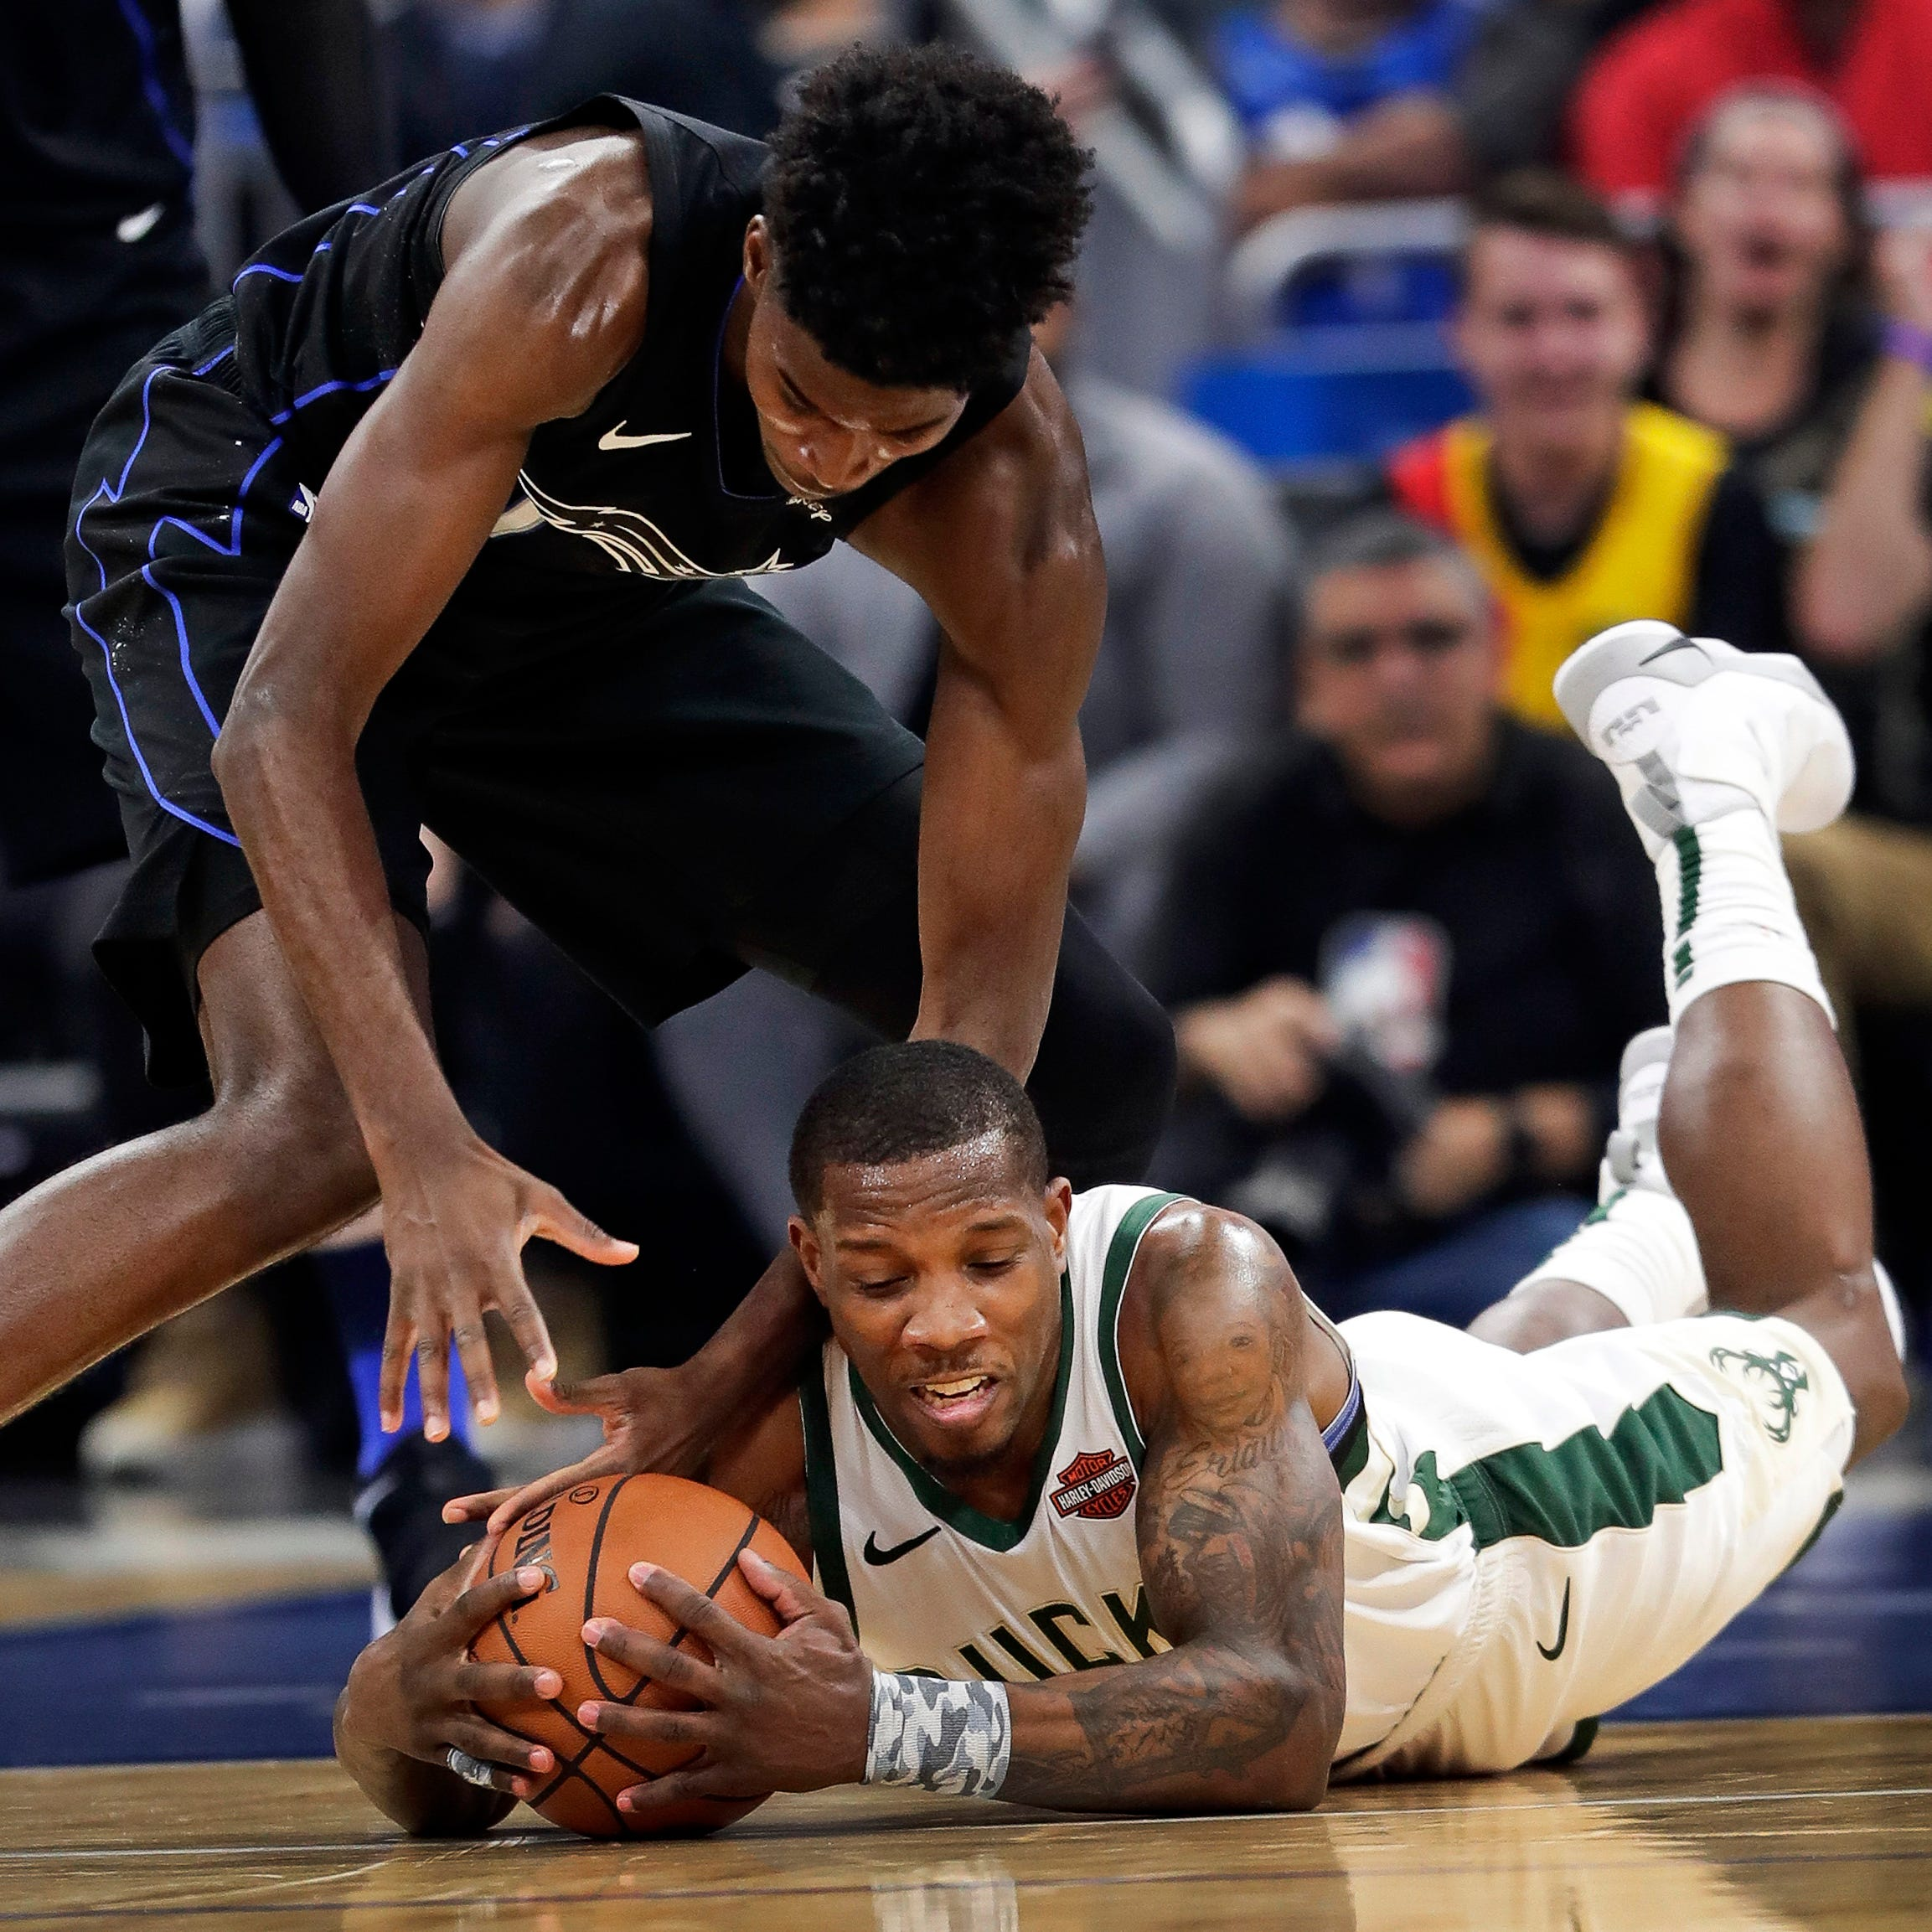 Bucks 118, Magic 108: Eric Bledsoe takes lead in team performance worthy of many accolades